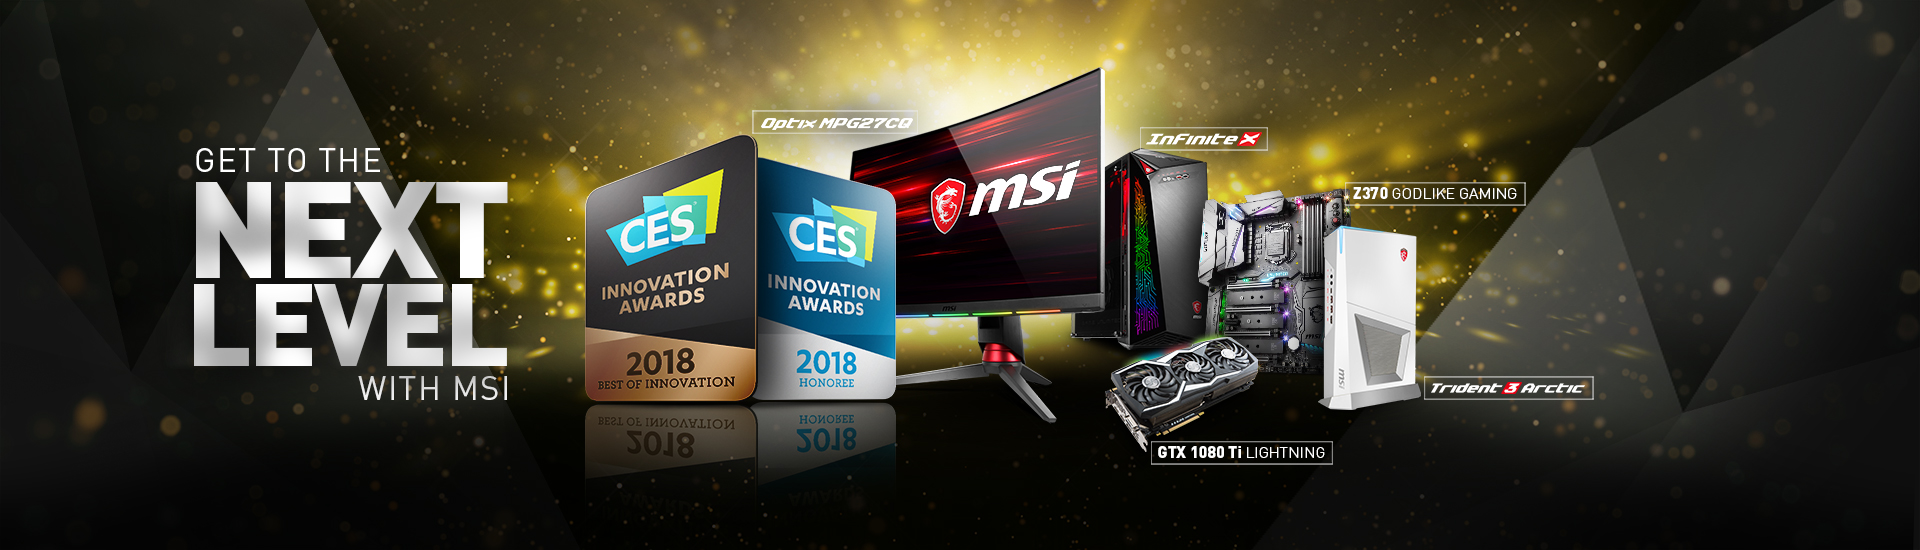 2018 CES Innovation Award Winning Gaming Gear